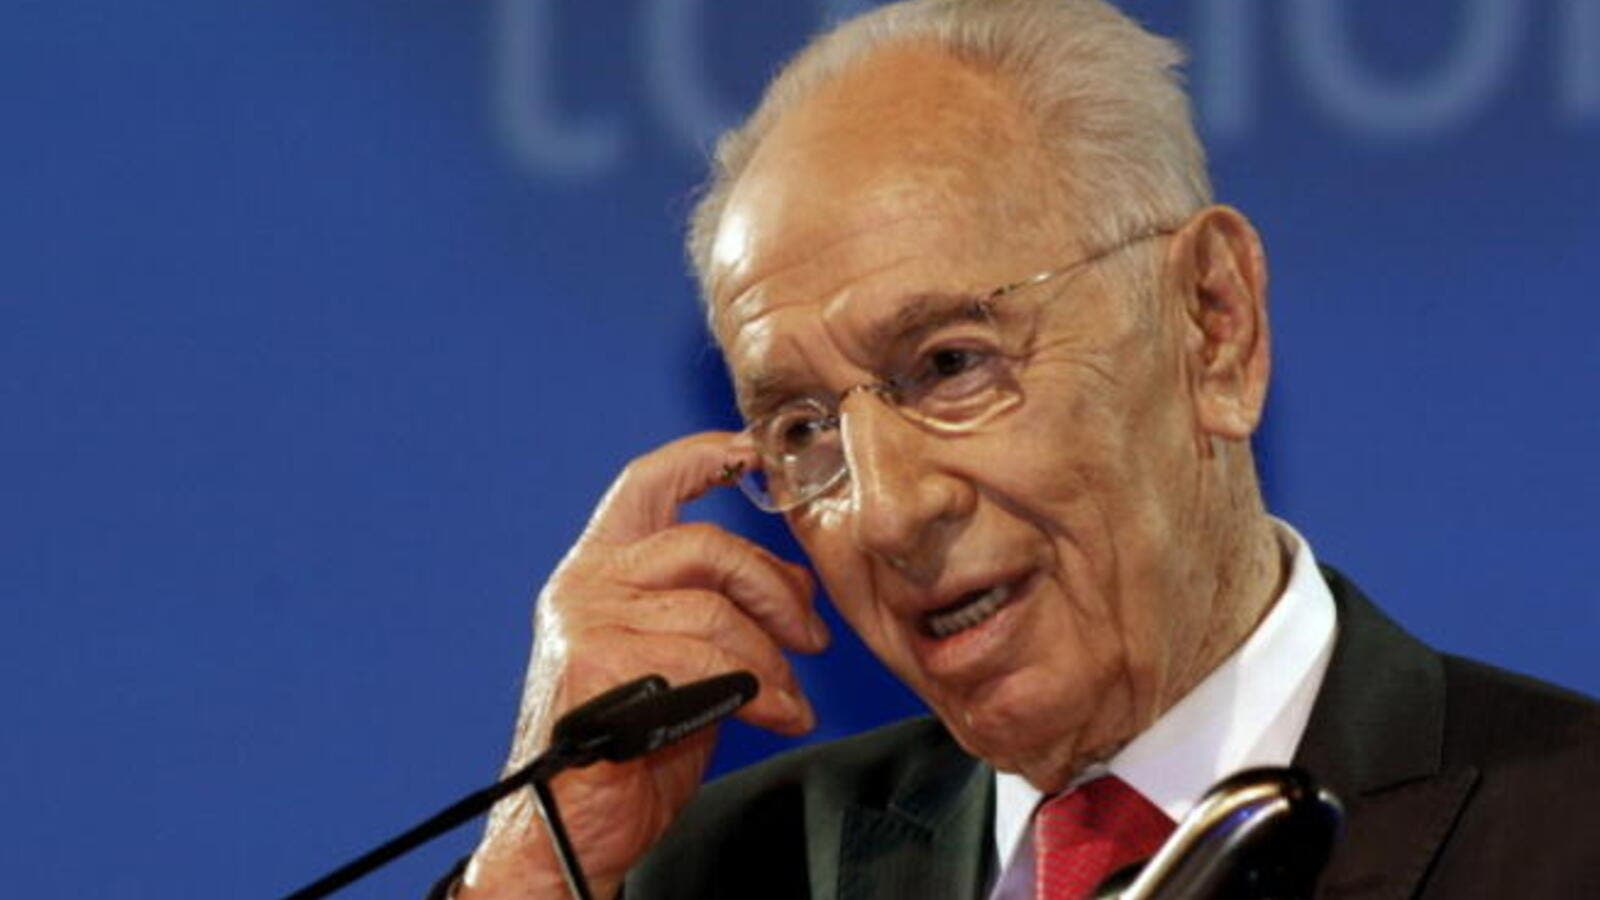 Israeli President Shimon Peres says he is ready to meet his Iranian counterpart Hassan Rowhani. [AFP]